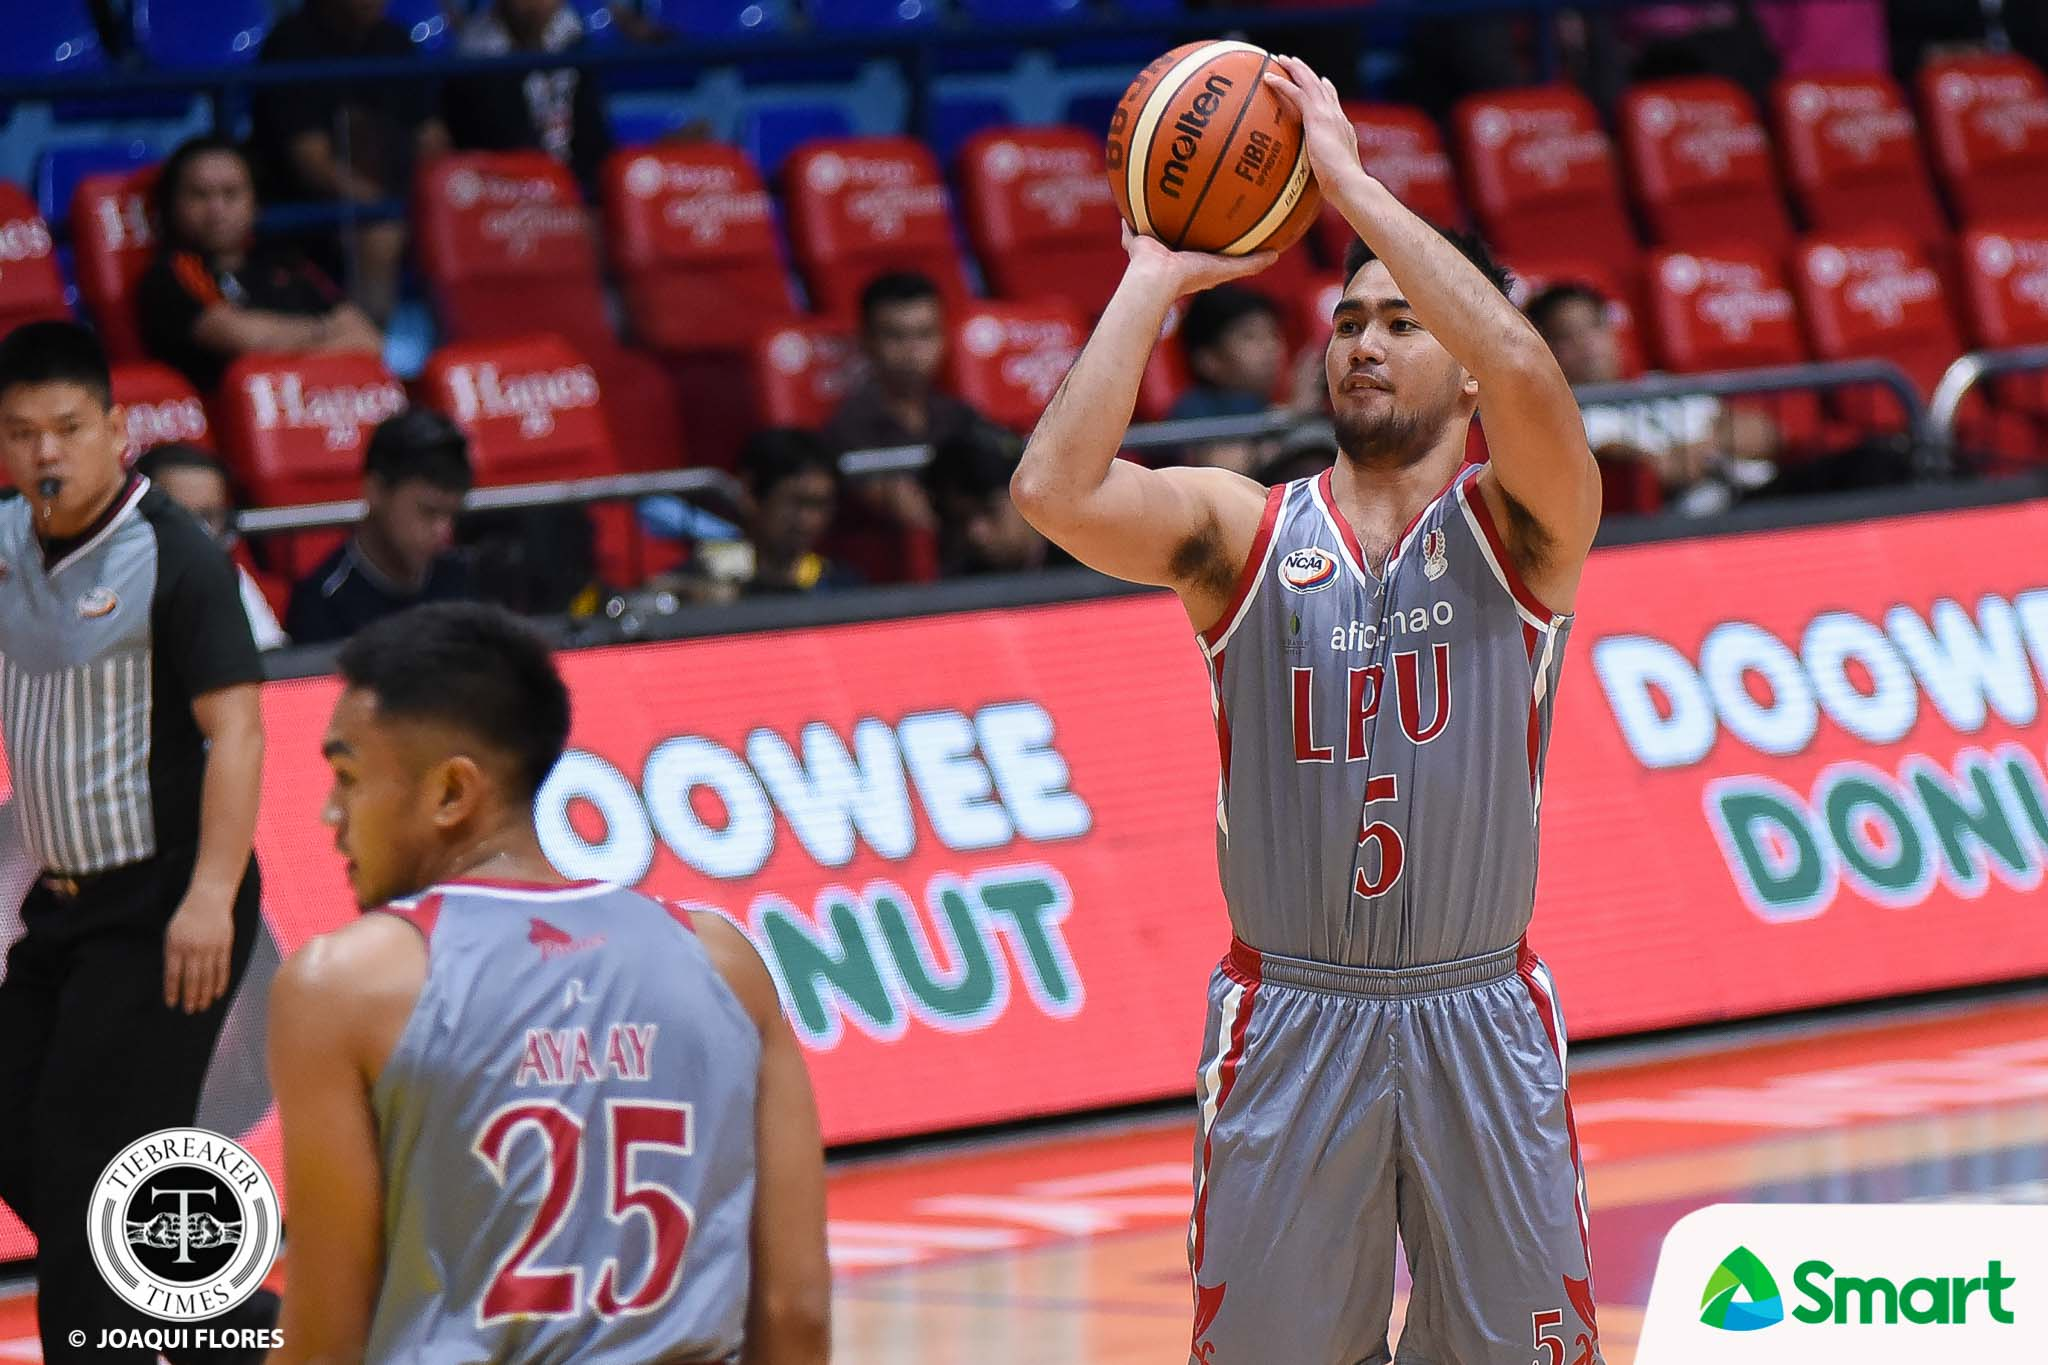 Tiebreaker Times Lyceum dismantles JRU with 32-point rout Basketball JRU LPU NCAA News  Vergel Meneses Topex Robinson NCAA Season 94 Seniors Basketball NCAA Season 94 Mike Nzeusseu Lyceum Seniors Basketball Kim Cinco JRU Seniors Basketball Jed Mendoza Jaycee Marcelino CJ Perez